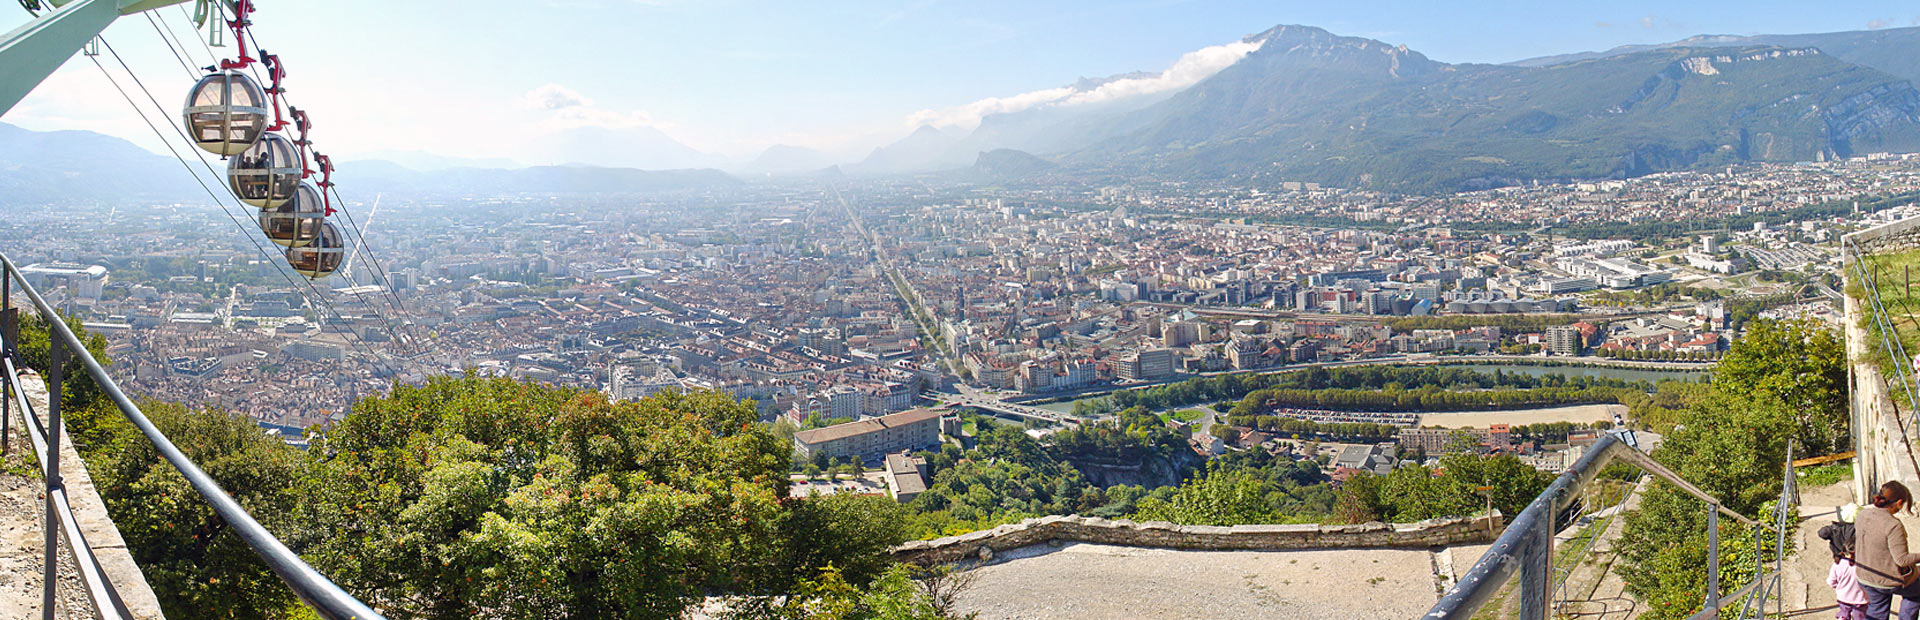 https://bastille-grenoble.fr/wp/wp-content/uploads/2019/01/slider_info-pratique_pro-tourisme.jpg